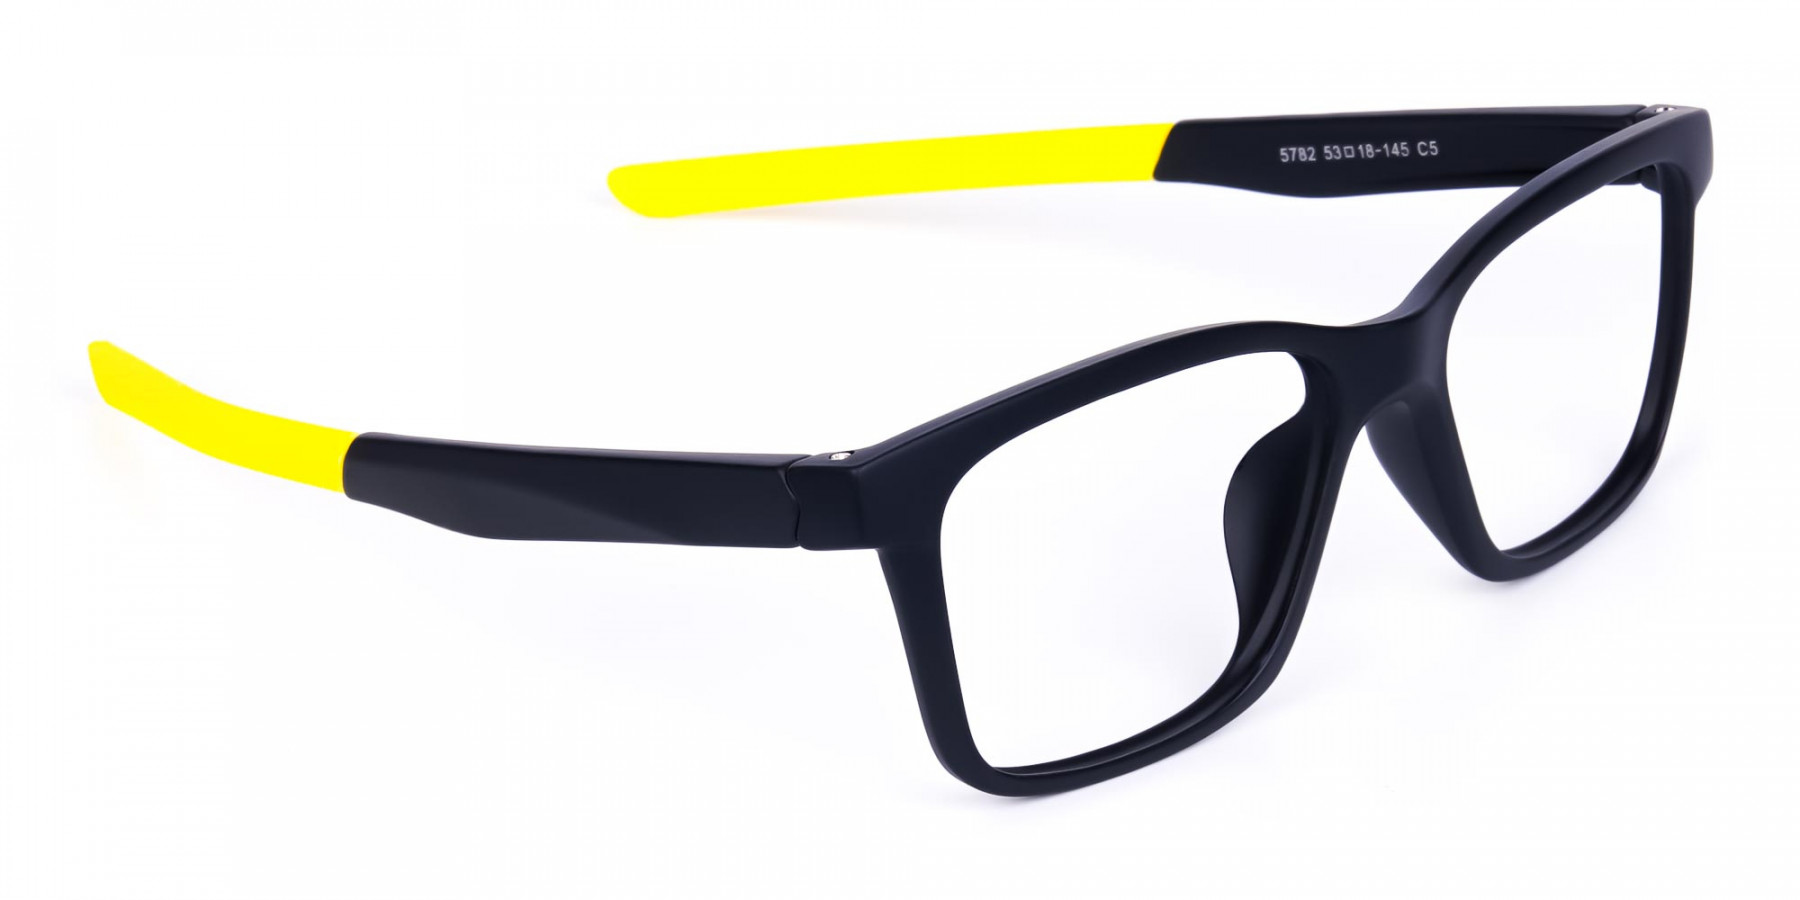 Black and Bright Yellow Cycling Glasses For Women In Rectangular Shape-1